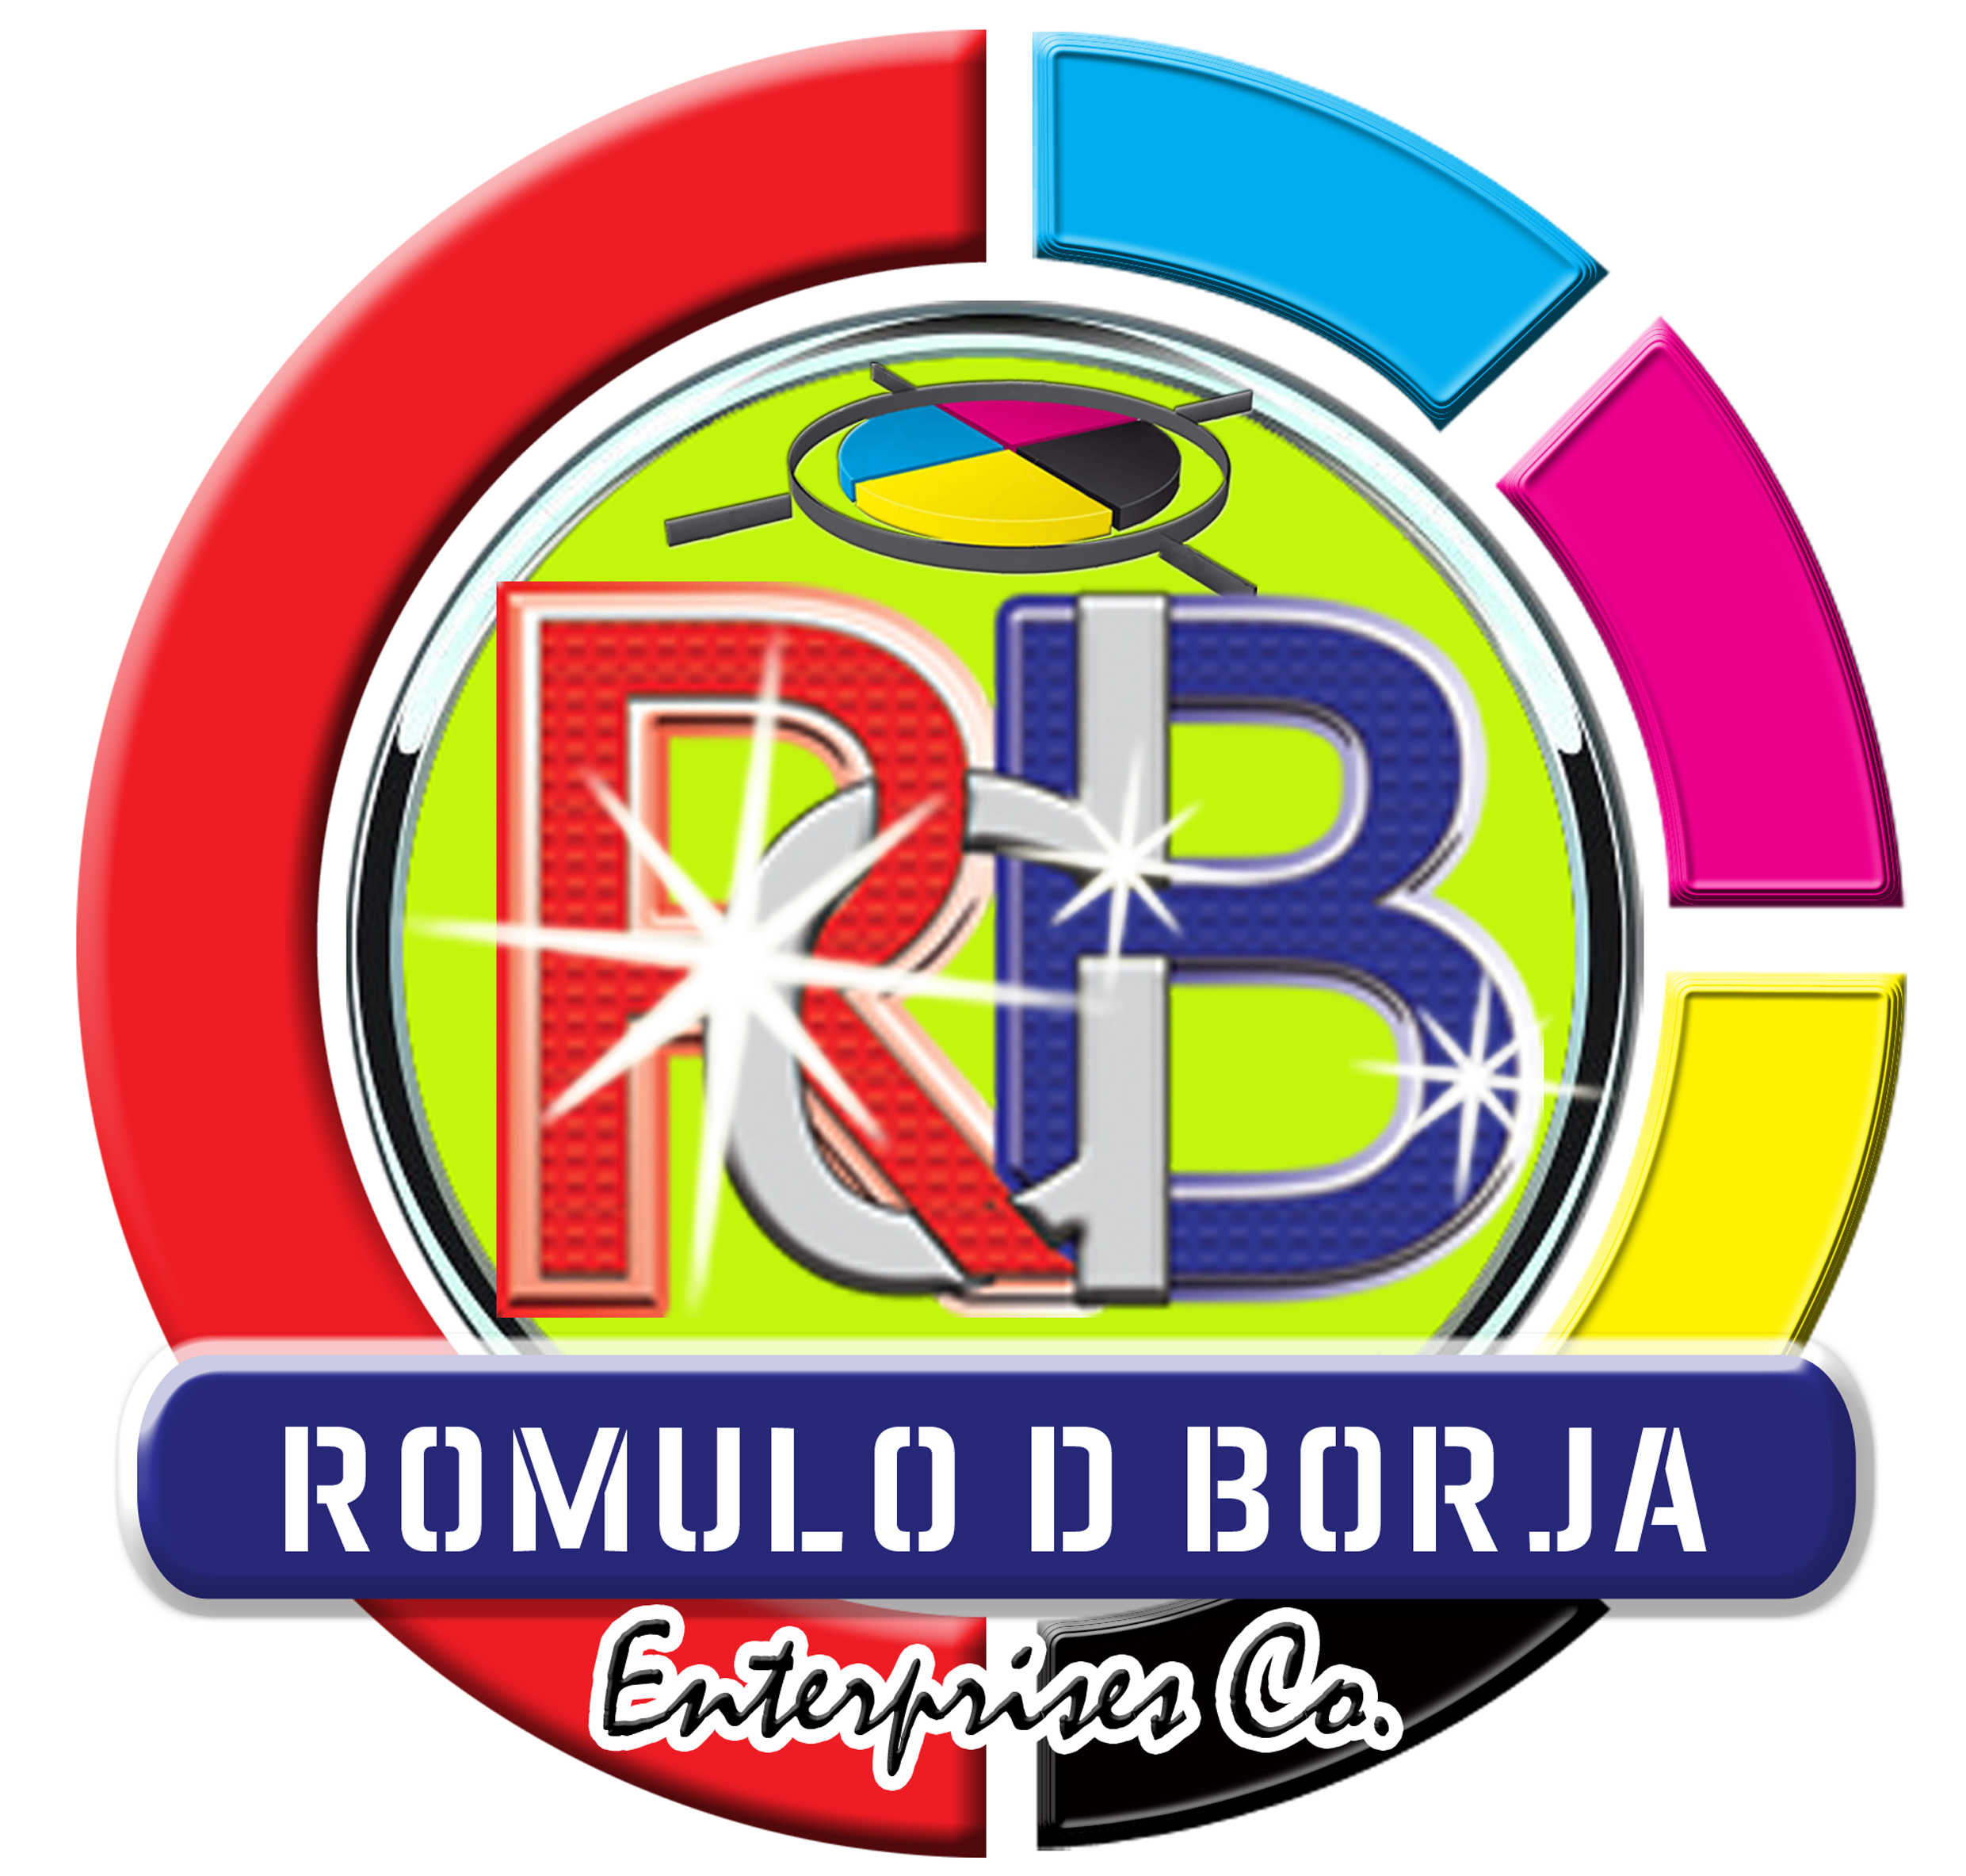 RDBorja Enterprises Co.